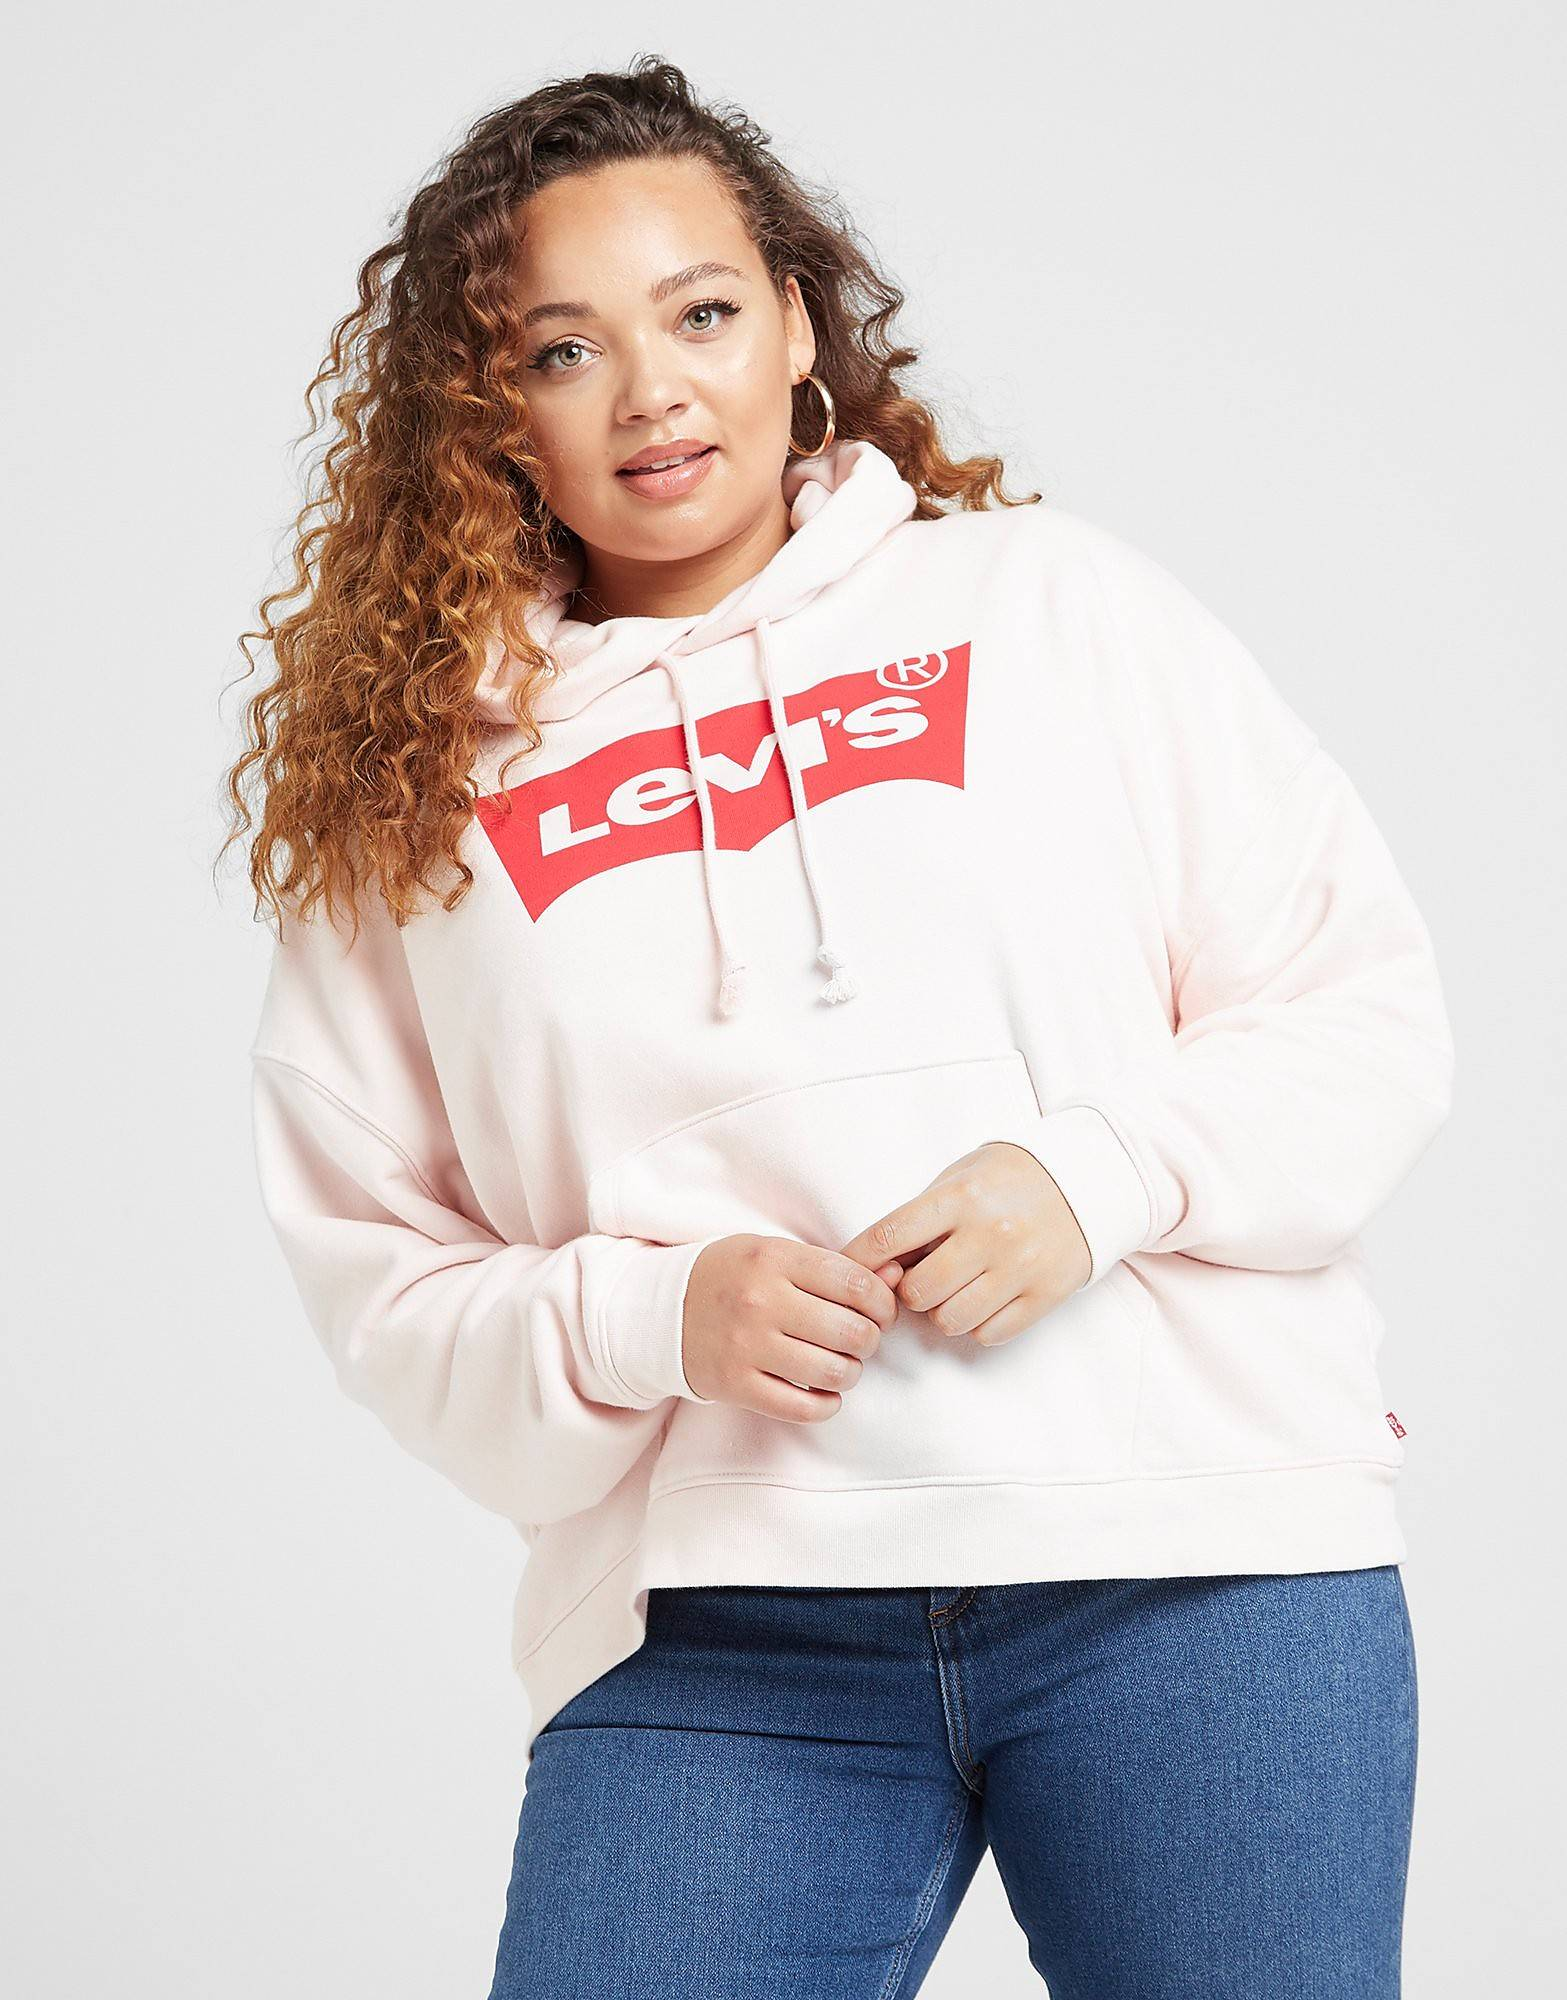 Levis Batwing Logo Plus Size Hoodie - Womens, Vaaleanpunainen  - Vaaleanpunainen - Size: Extra Large